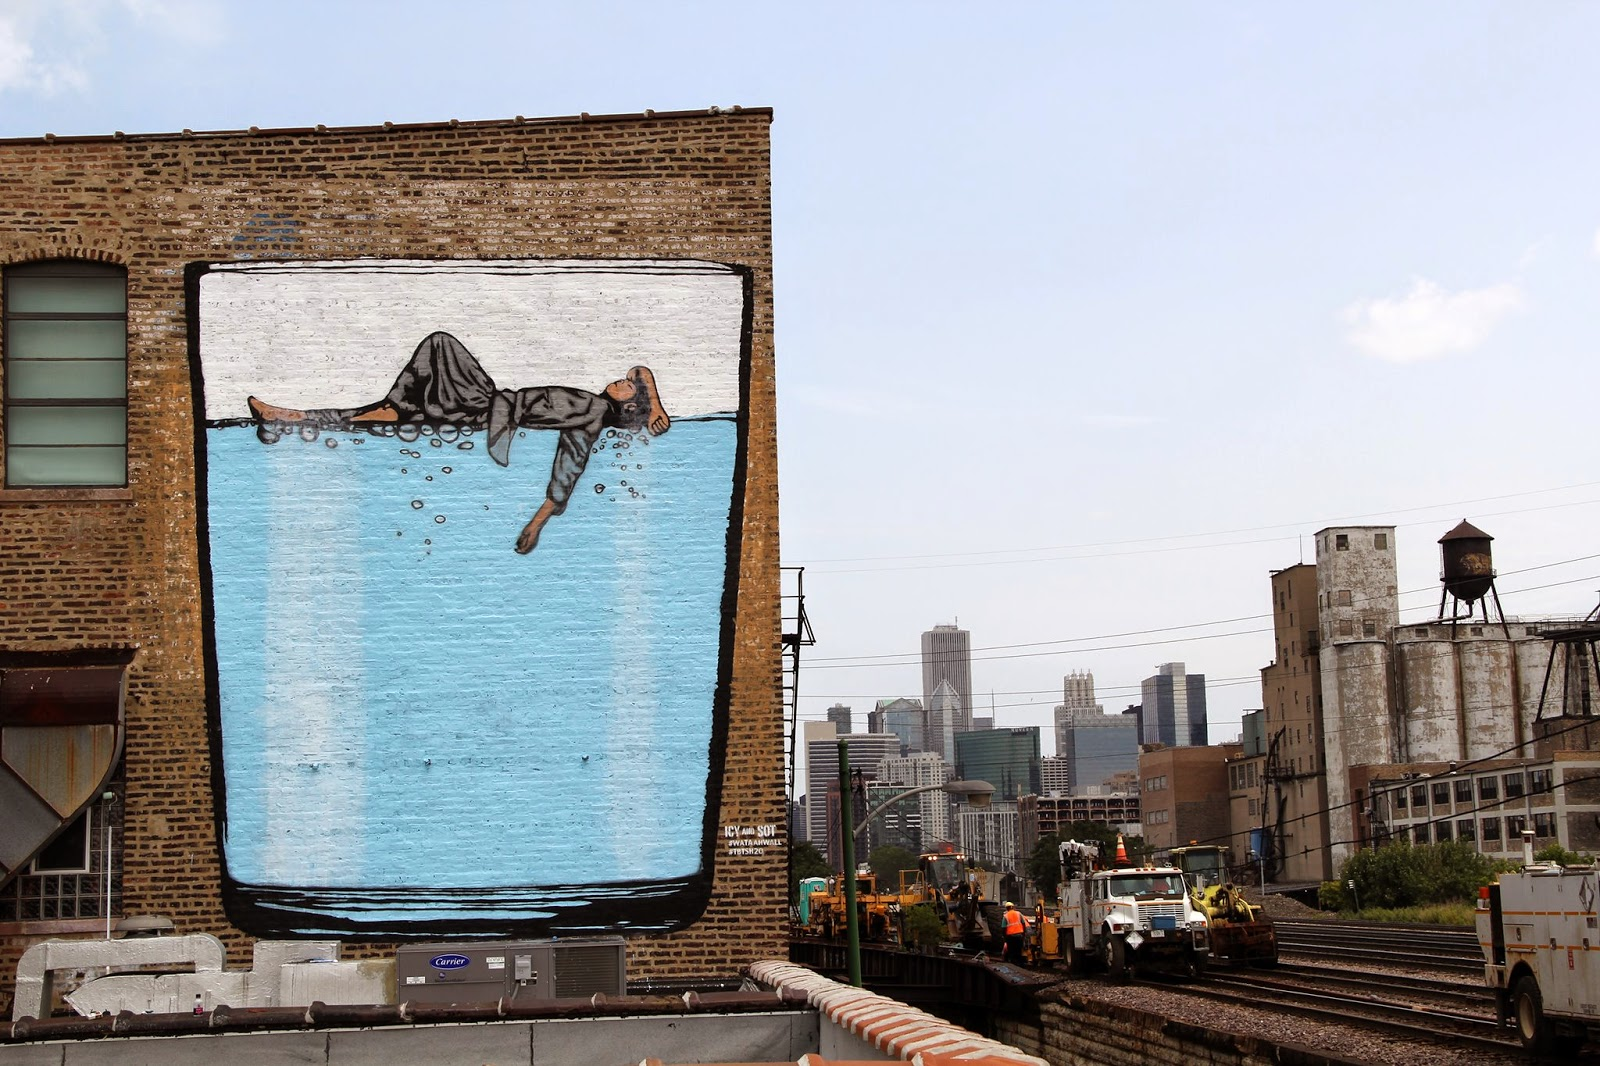 Icy sot new mural chicago usa streetartnews for Mural in chicago illinois